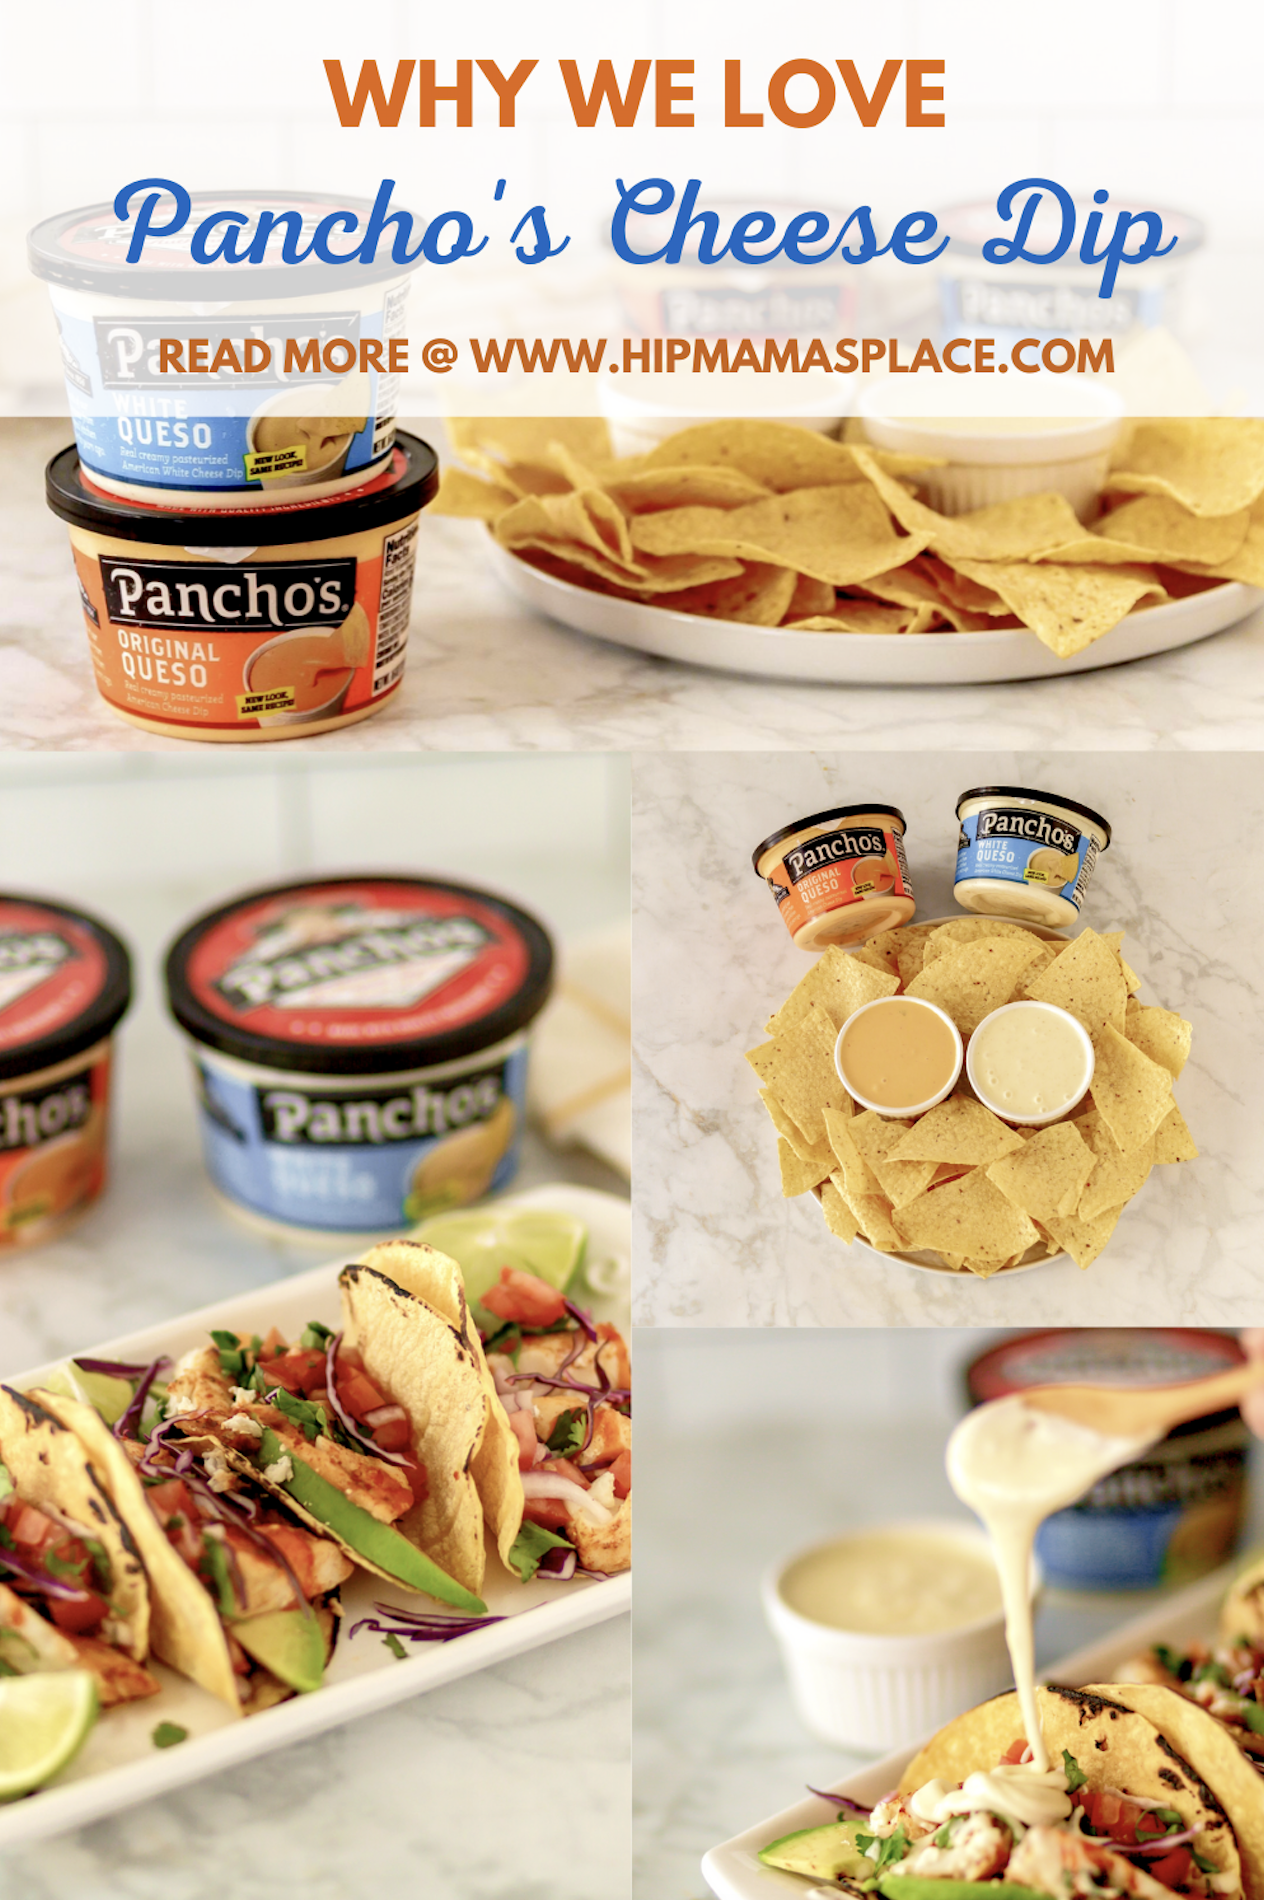 Burgers, hotdogs and s'mores may be on almost every barbecue menu, but the newest addition to our family's outdoor meals and snacks is Pancho's Queso Dip. #ad #BestDipOnThePlanet #PanchosPartner